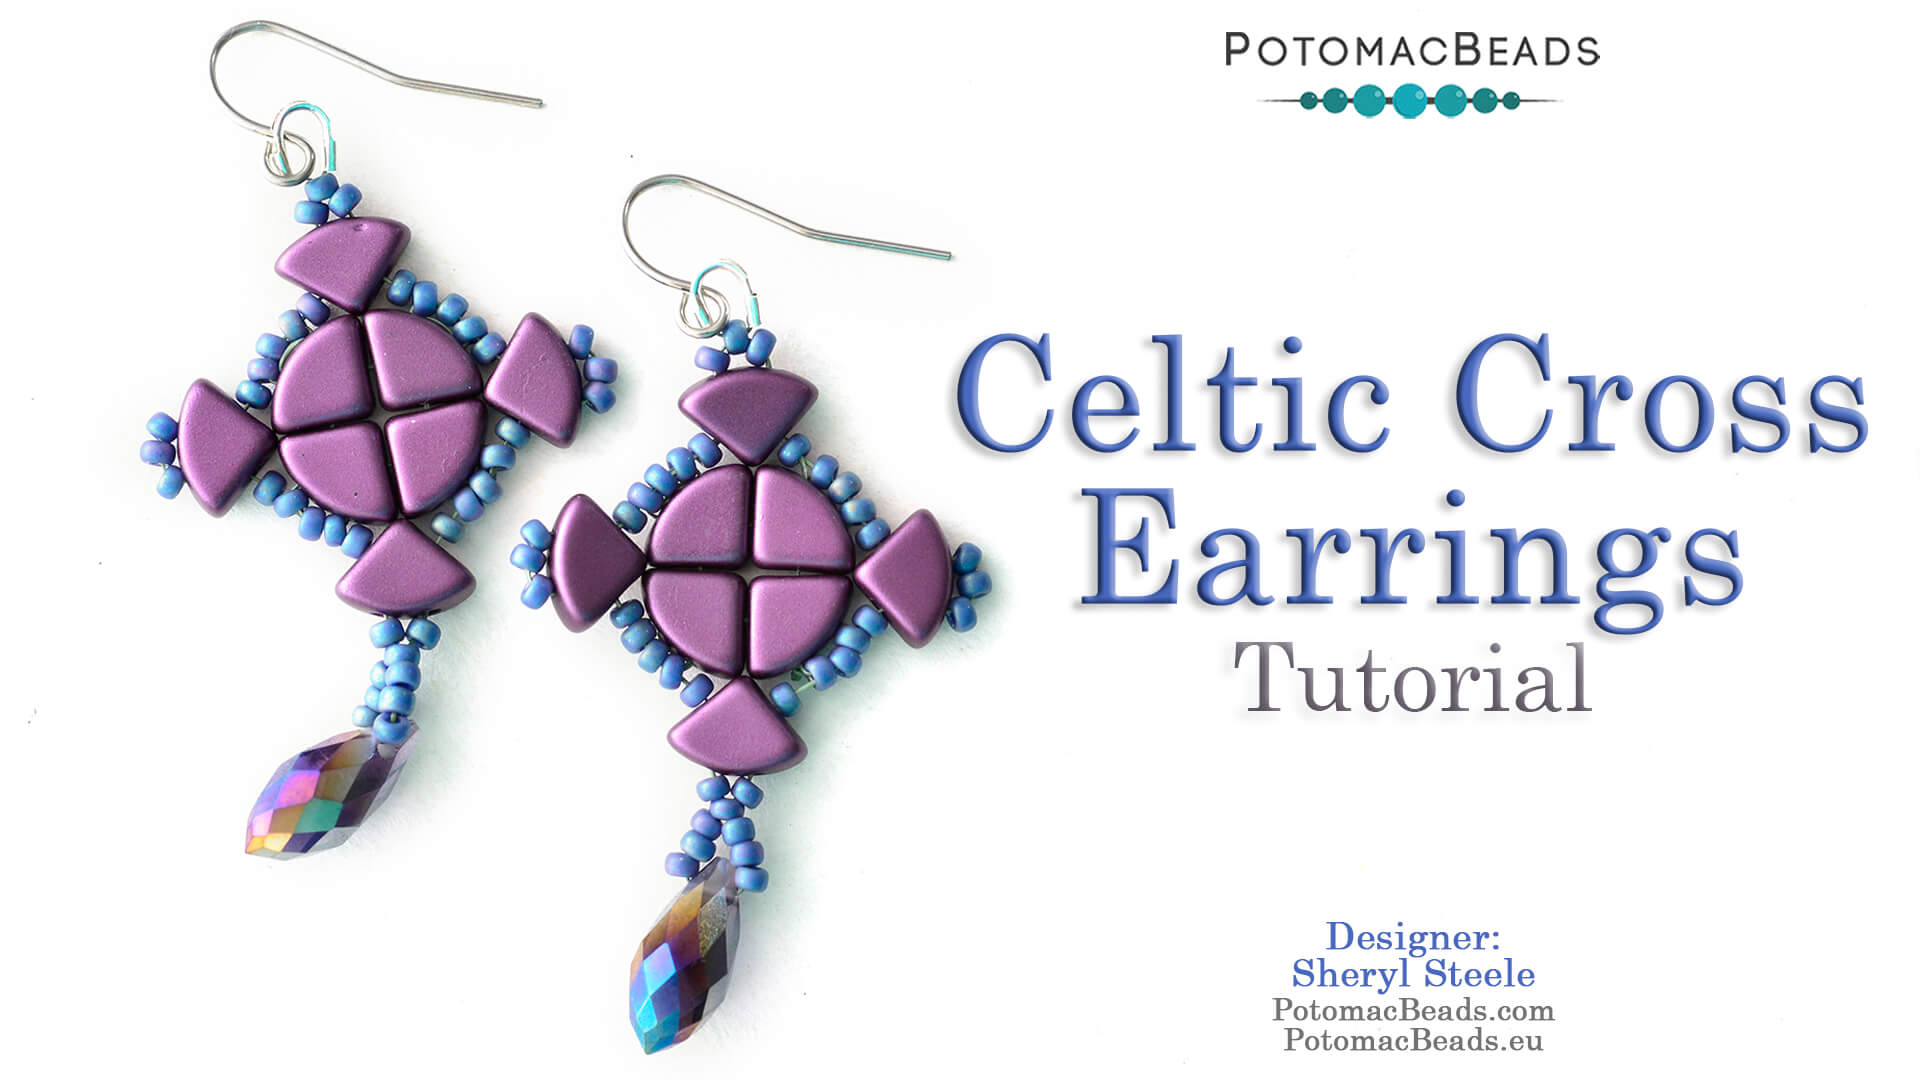 How to Bead Jewelry / Videos Sorted by Beads / QuadBow & PieDuo Bead Videos / Celtic Cross Earrings Tutorial